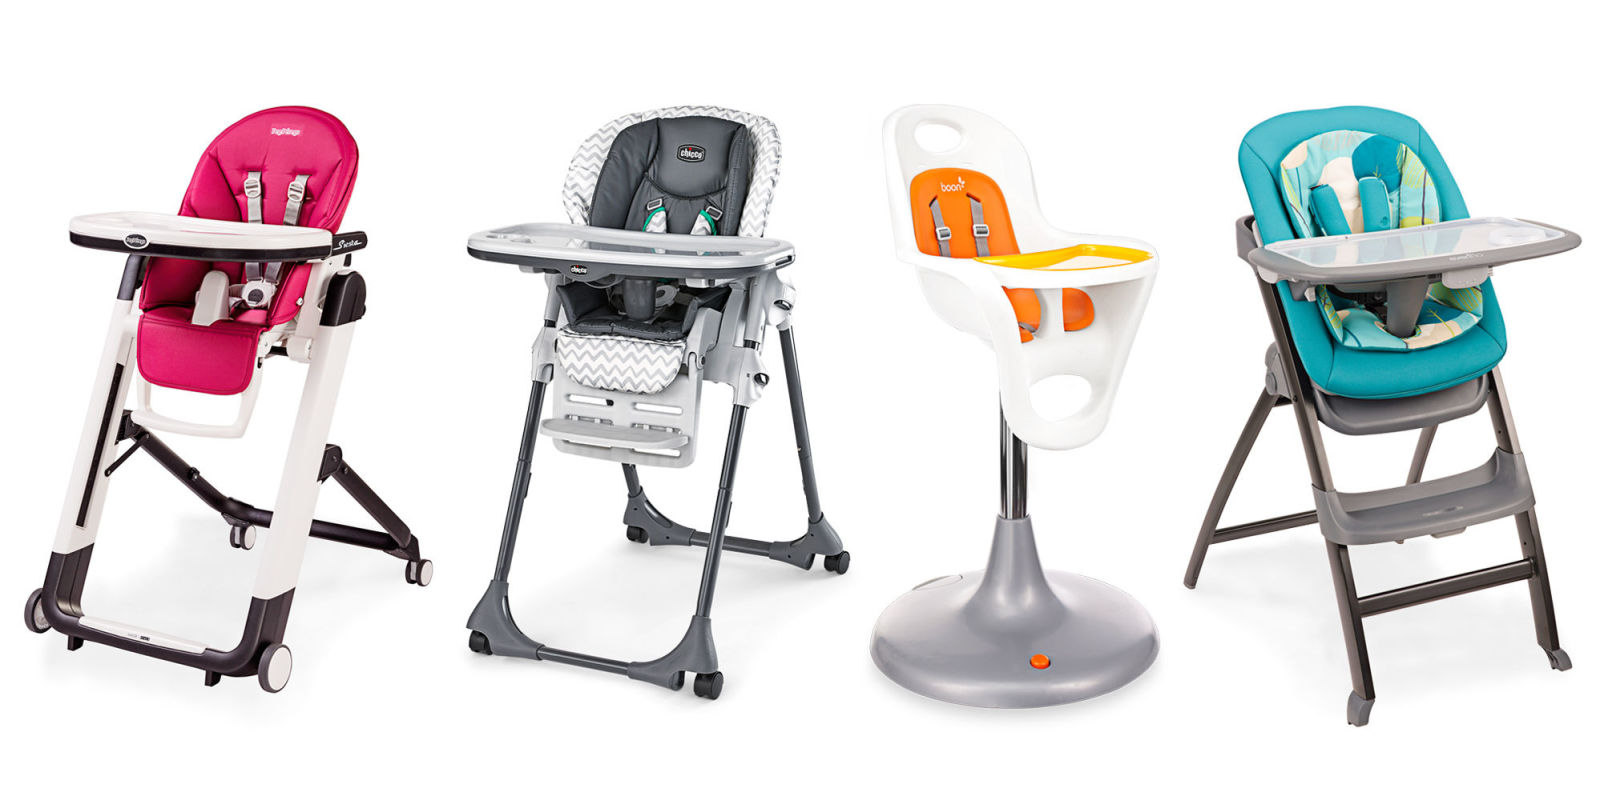 Best High Chair Review Here Are The Top High Chairs Of 2016 Best High Chairs